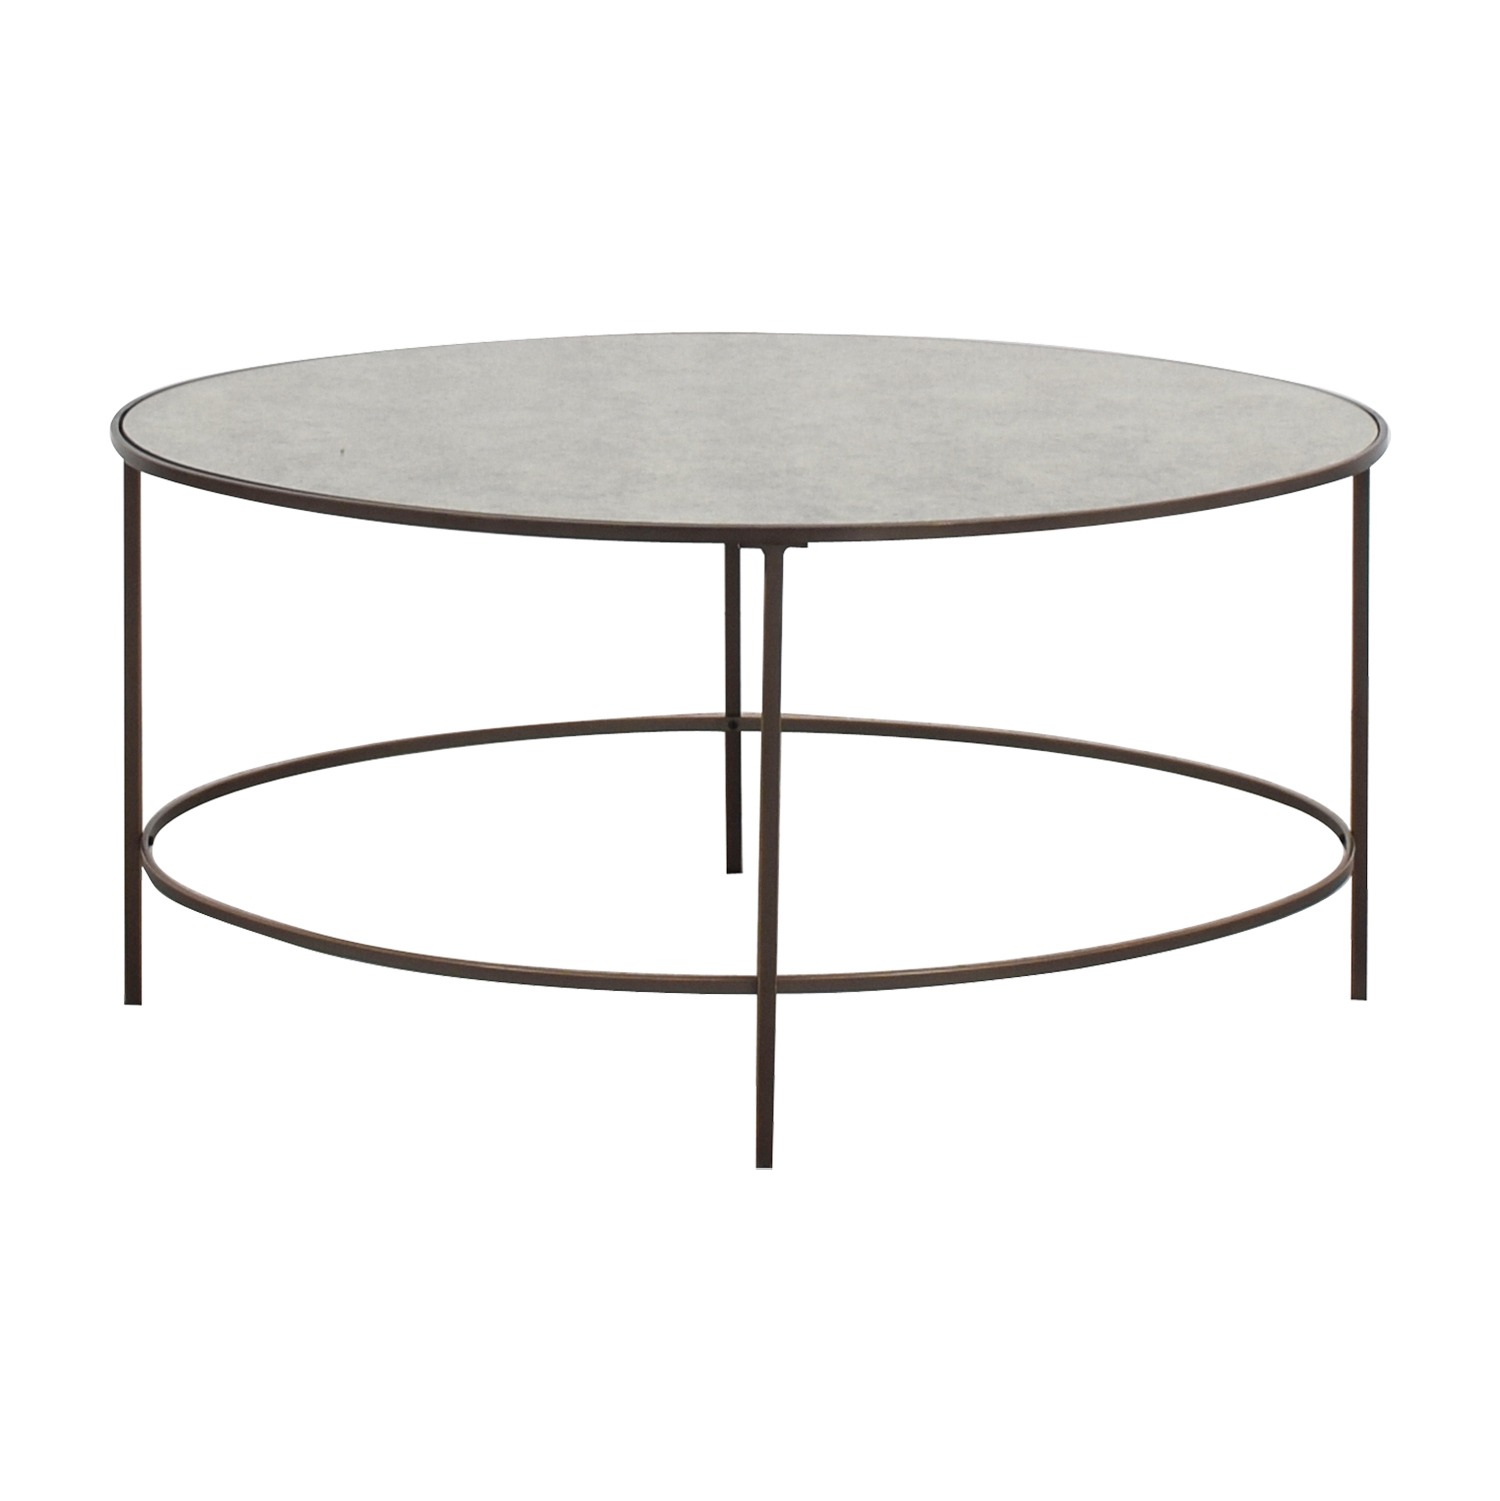 76 Off West Elm West Elm Oval Metal And Mirror Coffee Table